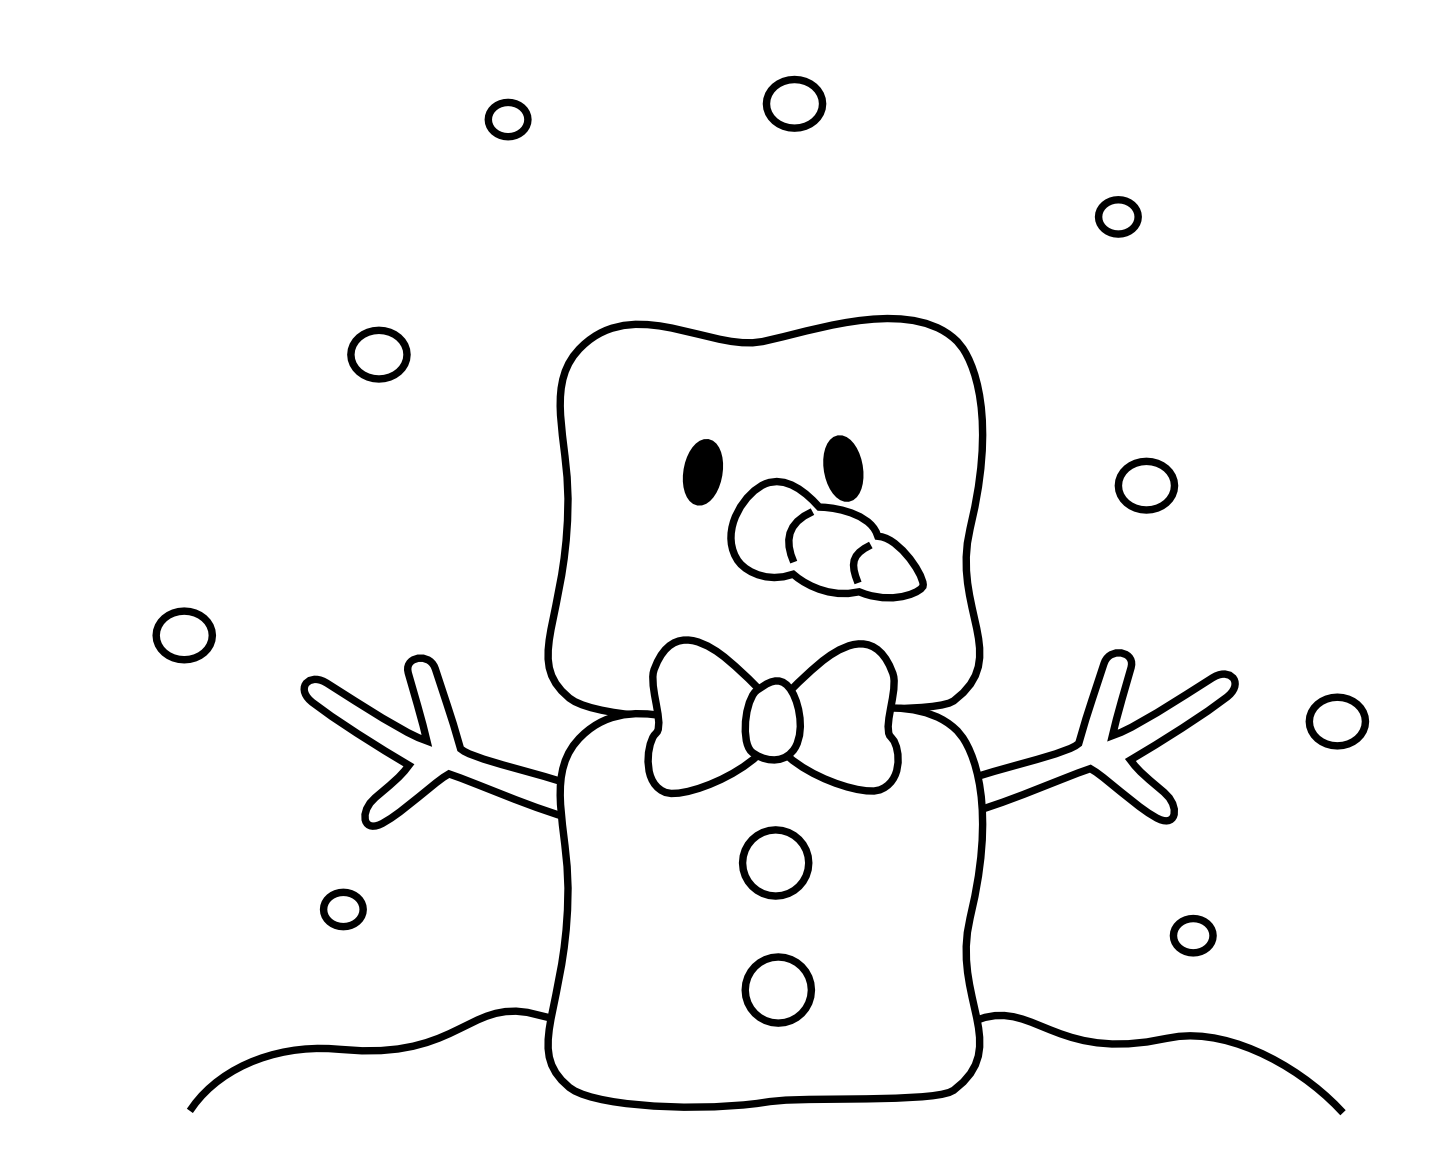 Free digi 39 s for handmade cards on pinterest digital for Cute marshmallow coloring pages